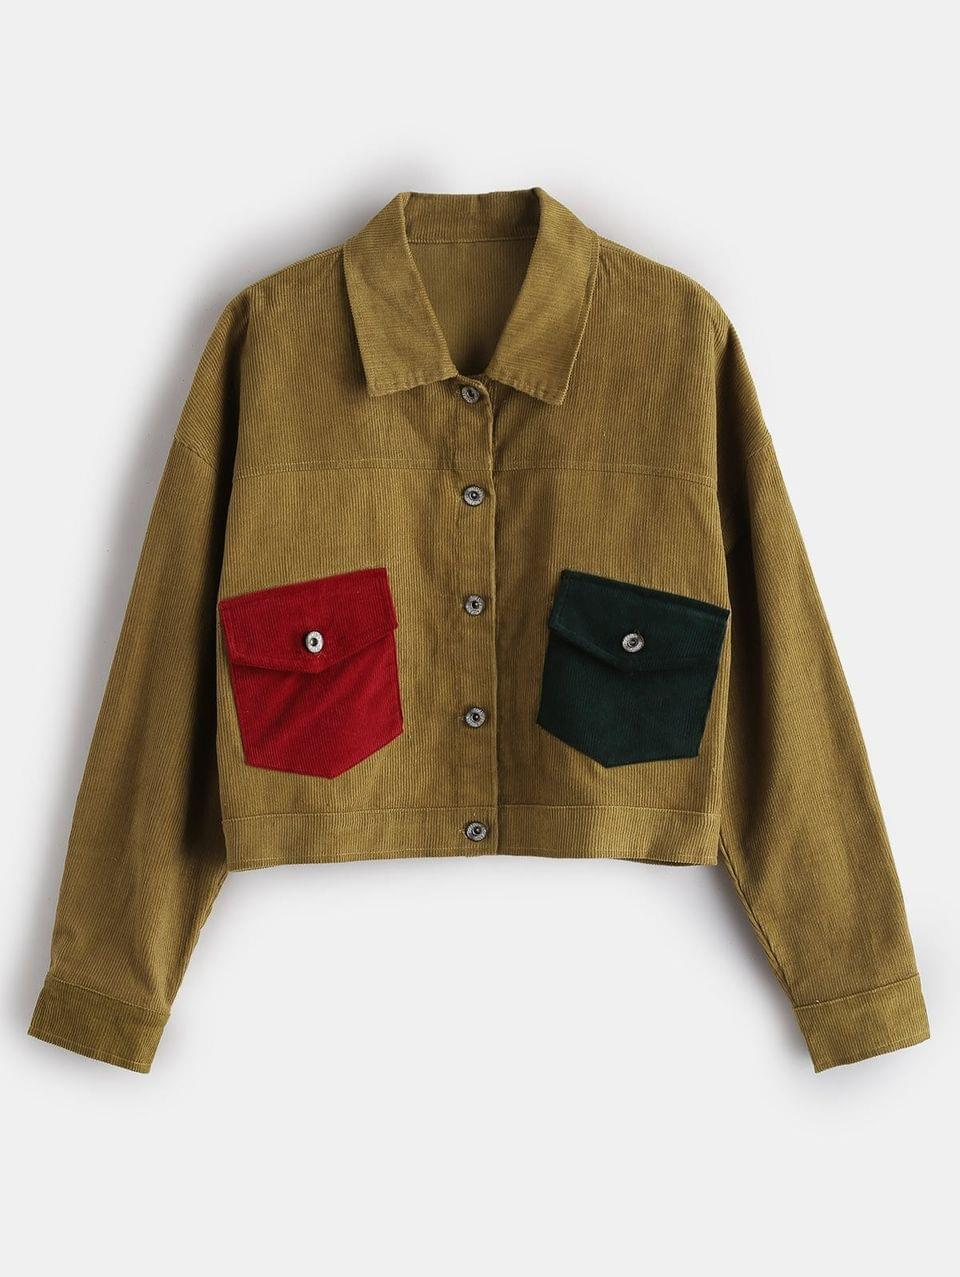 Women's Button Up Corduroy Shirt Jacket - Harvest Yellow S